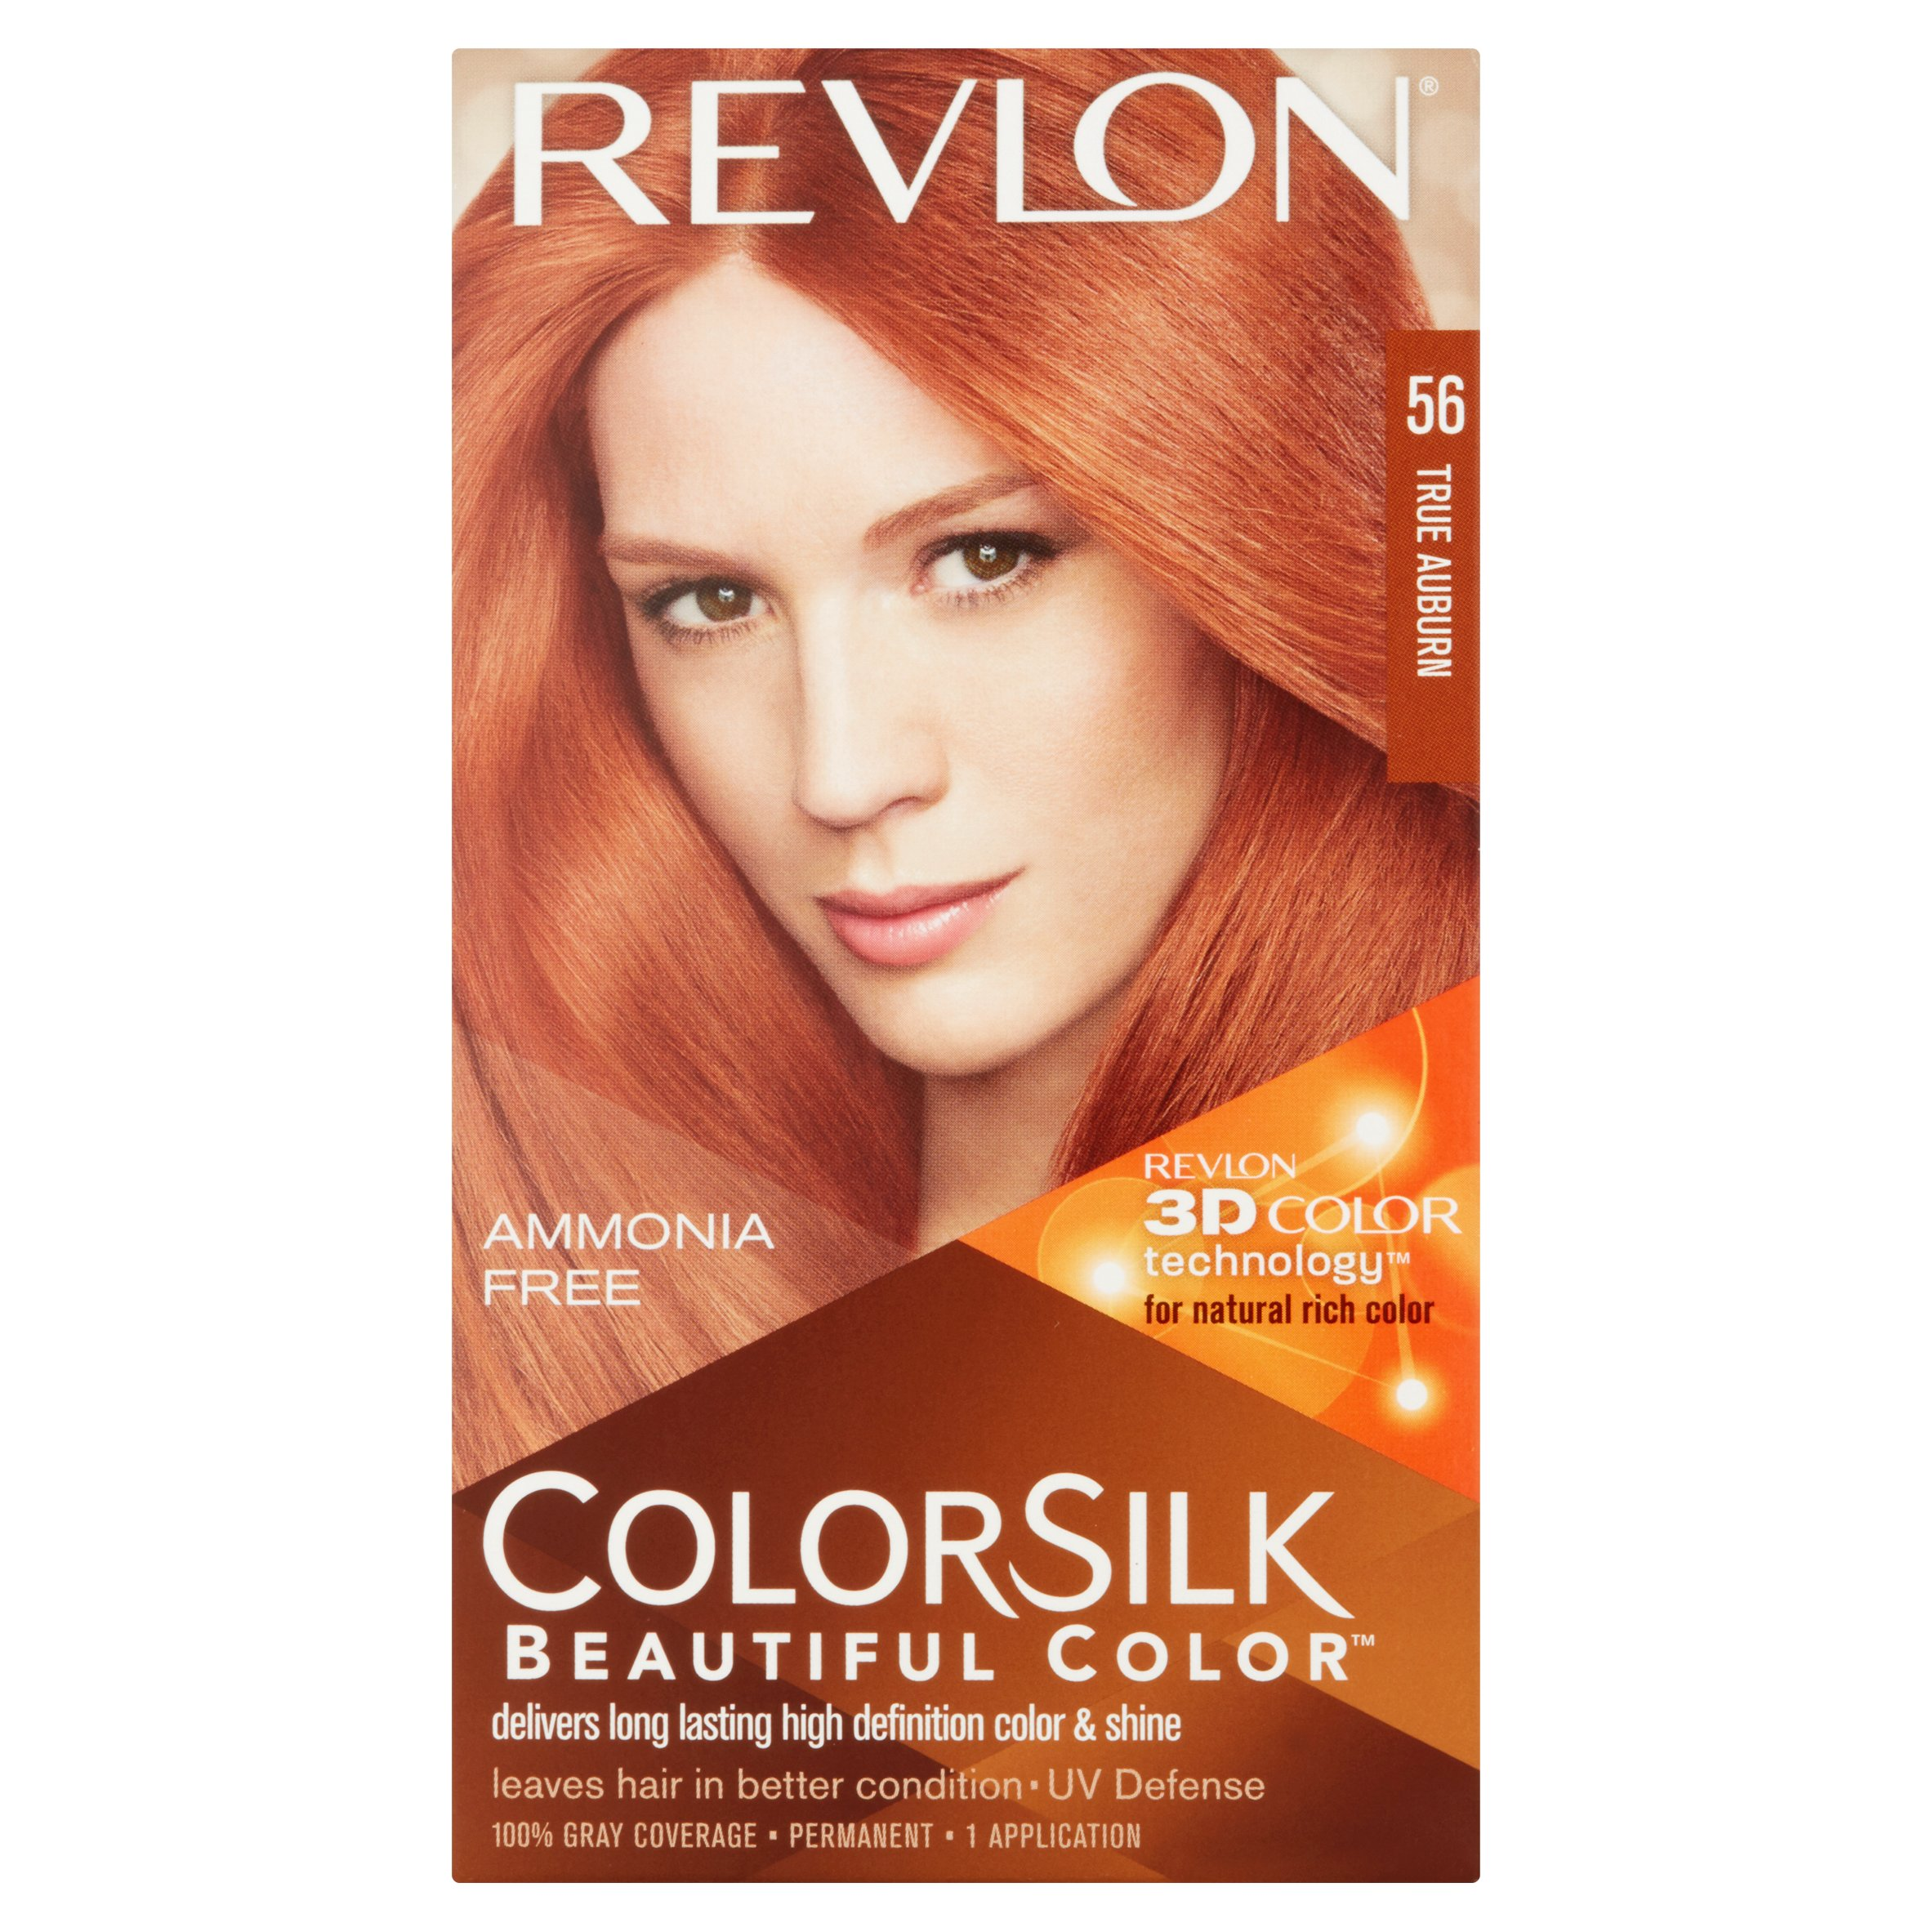 Revlon Colorsilk Luminista Haircolor